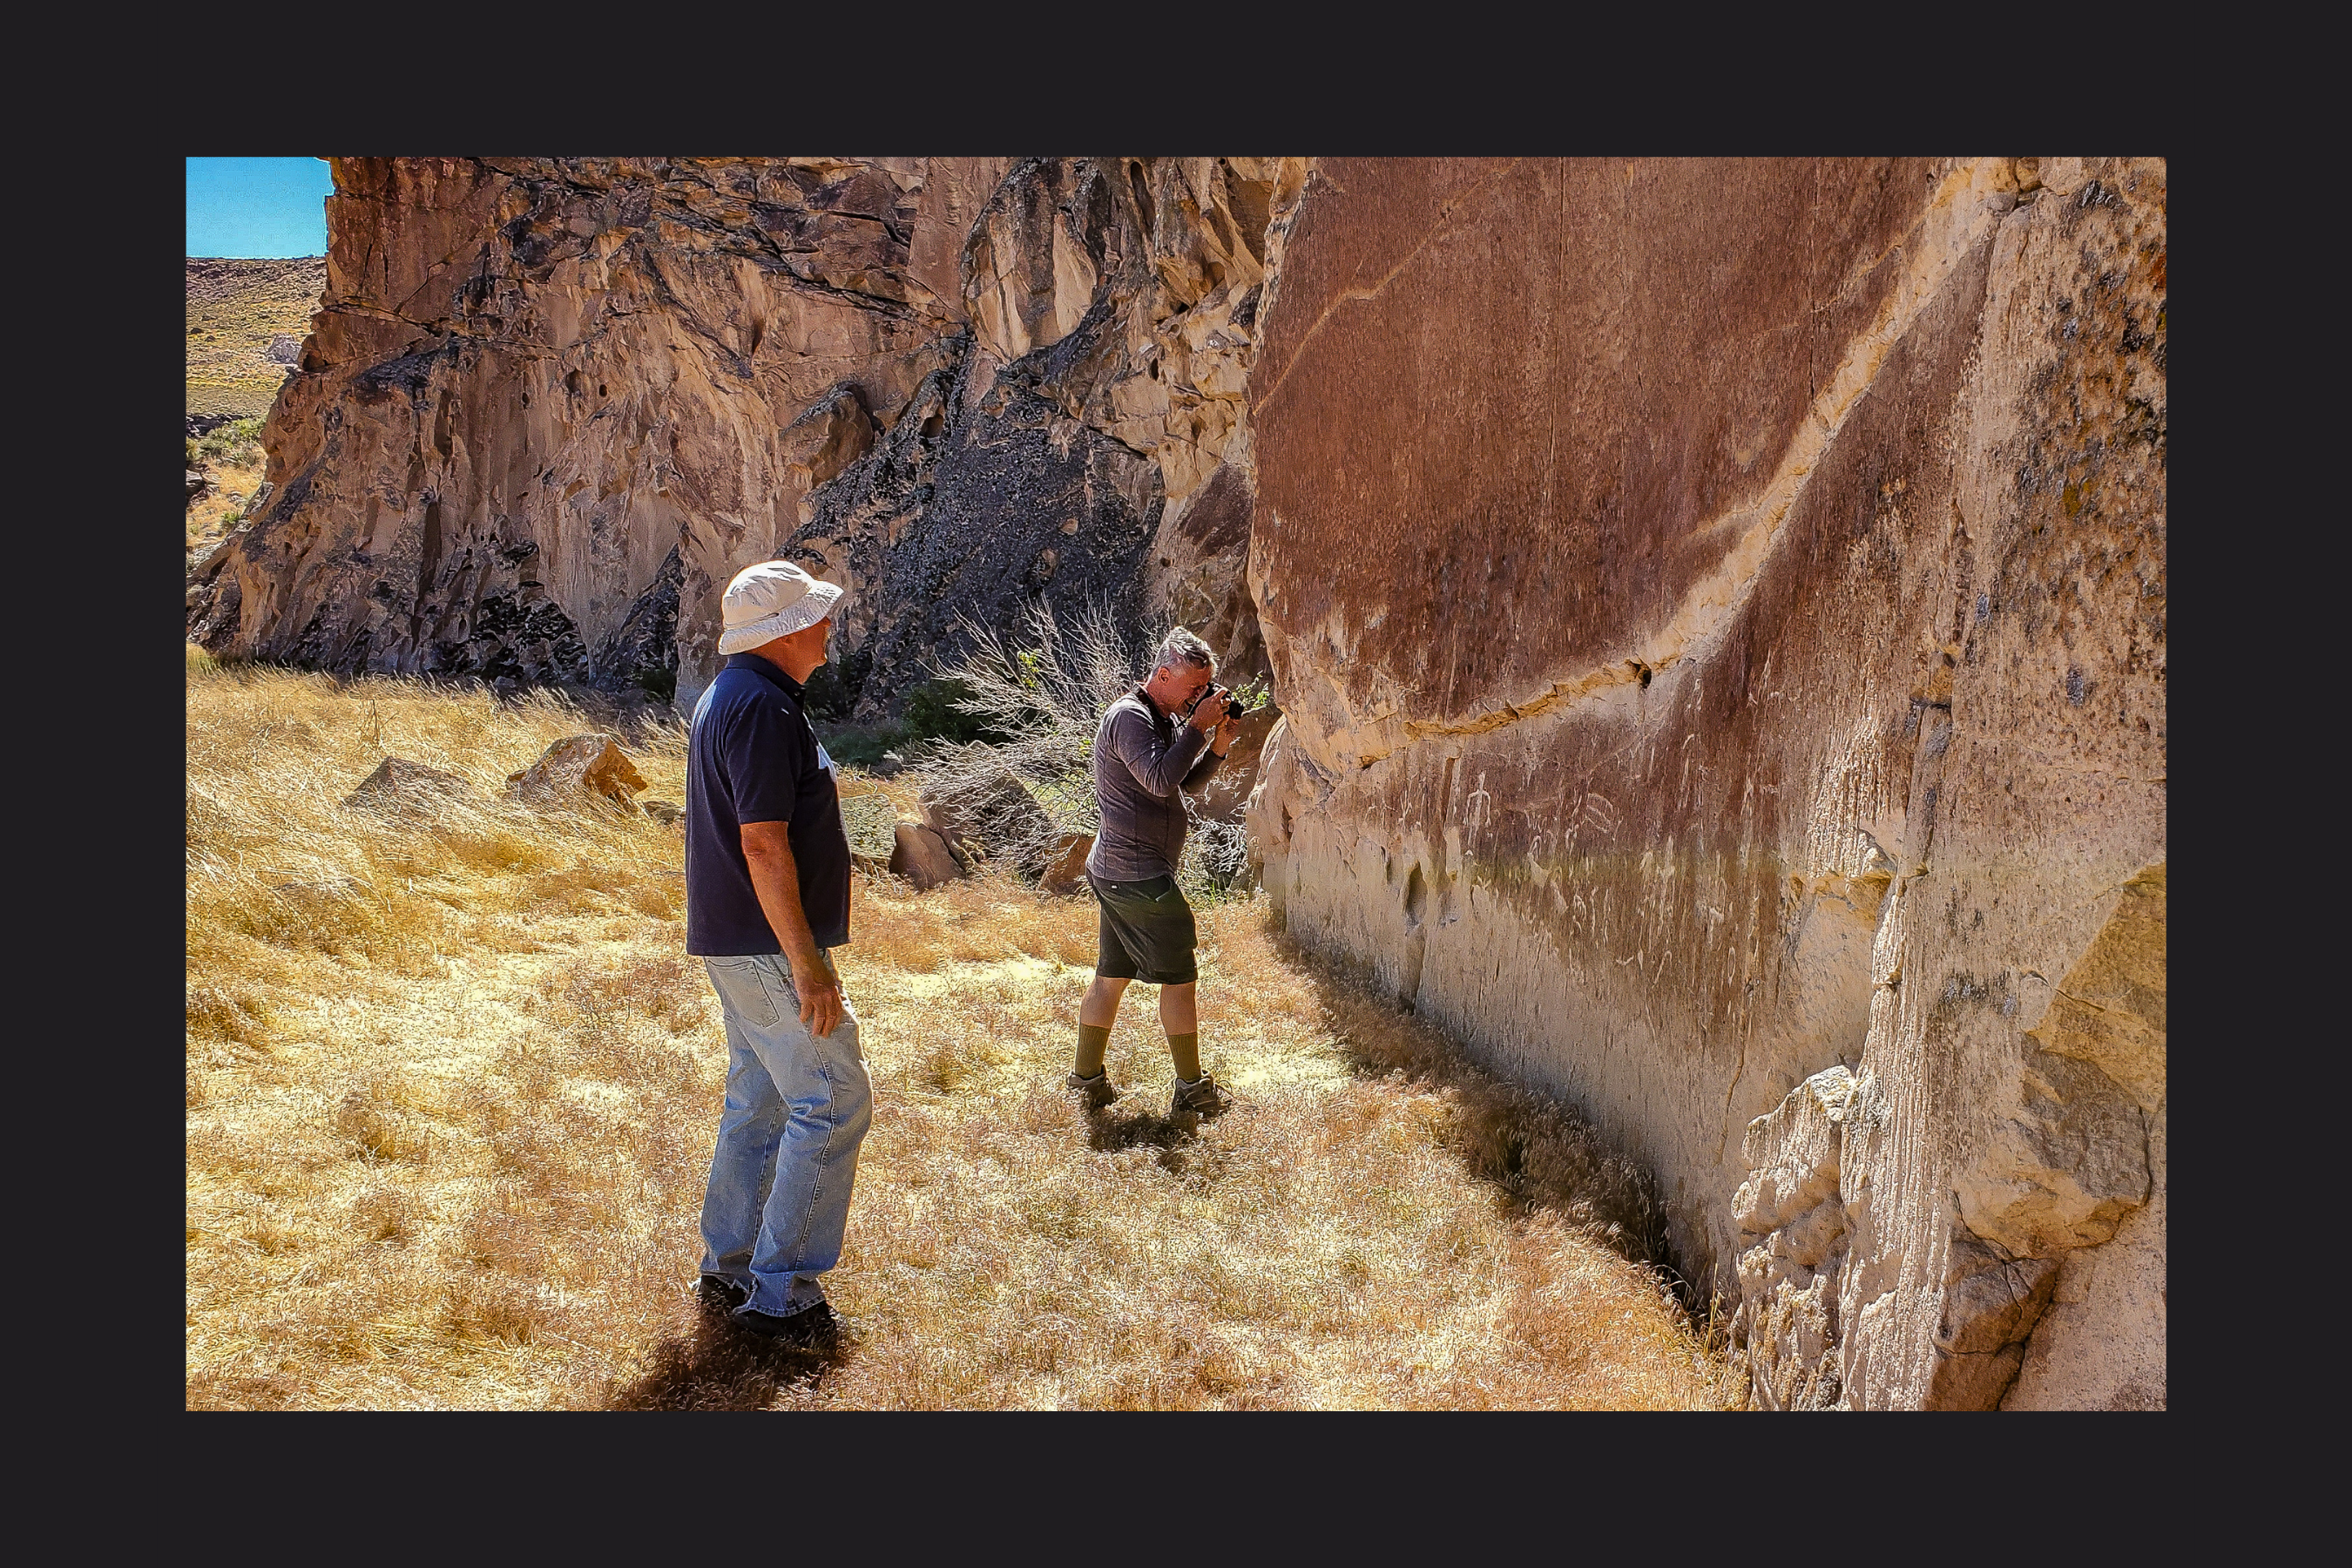 Recording the rock writing in the test area